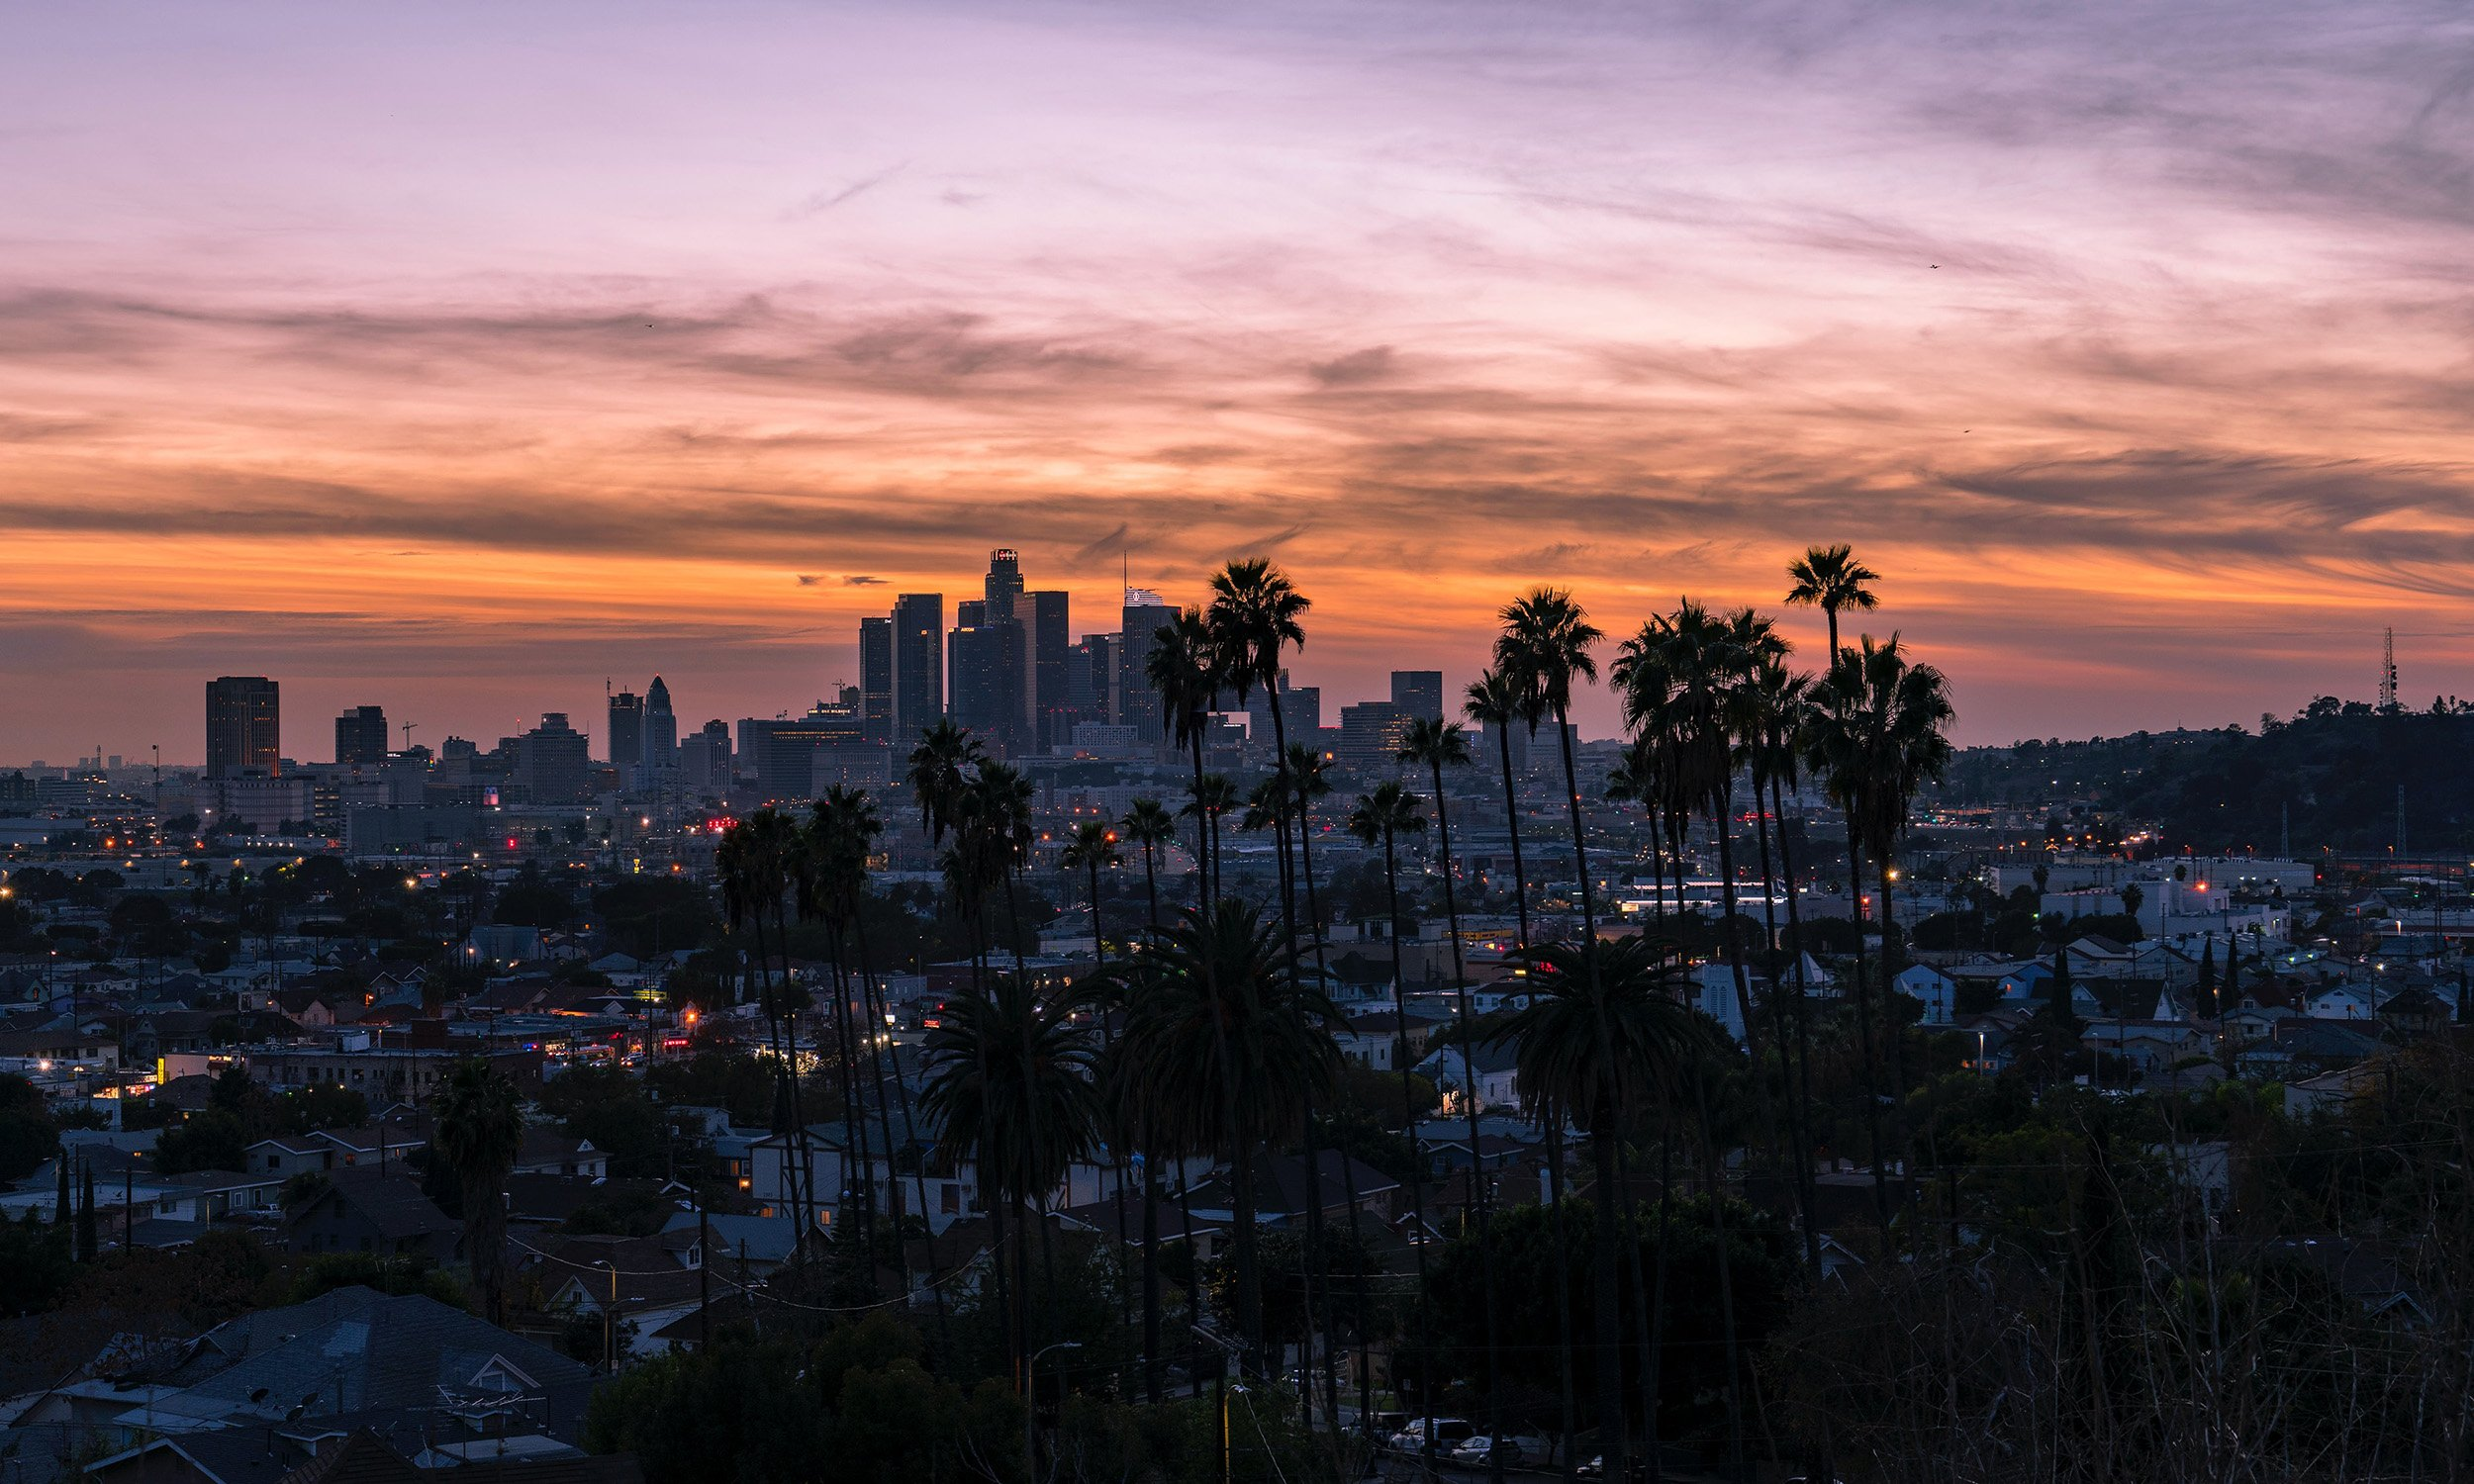 Los Angeles Virtual Guide: 27 Tours & Attractions You Can Visit from Home